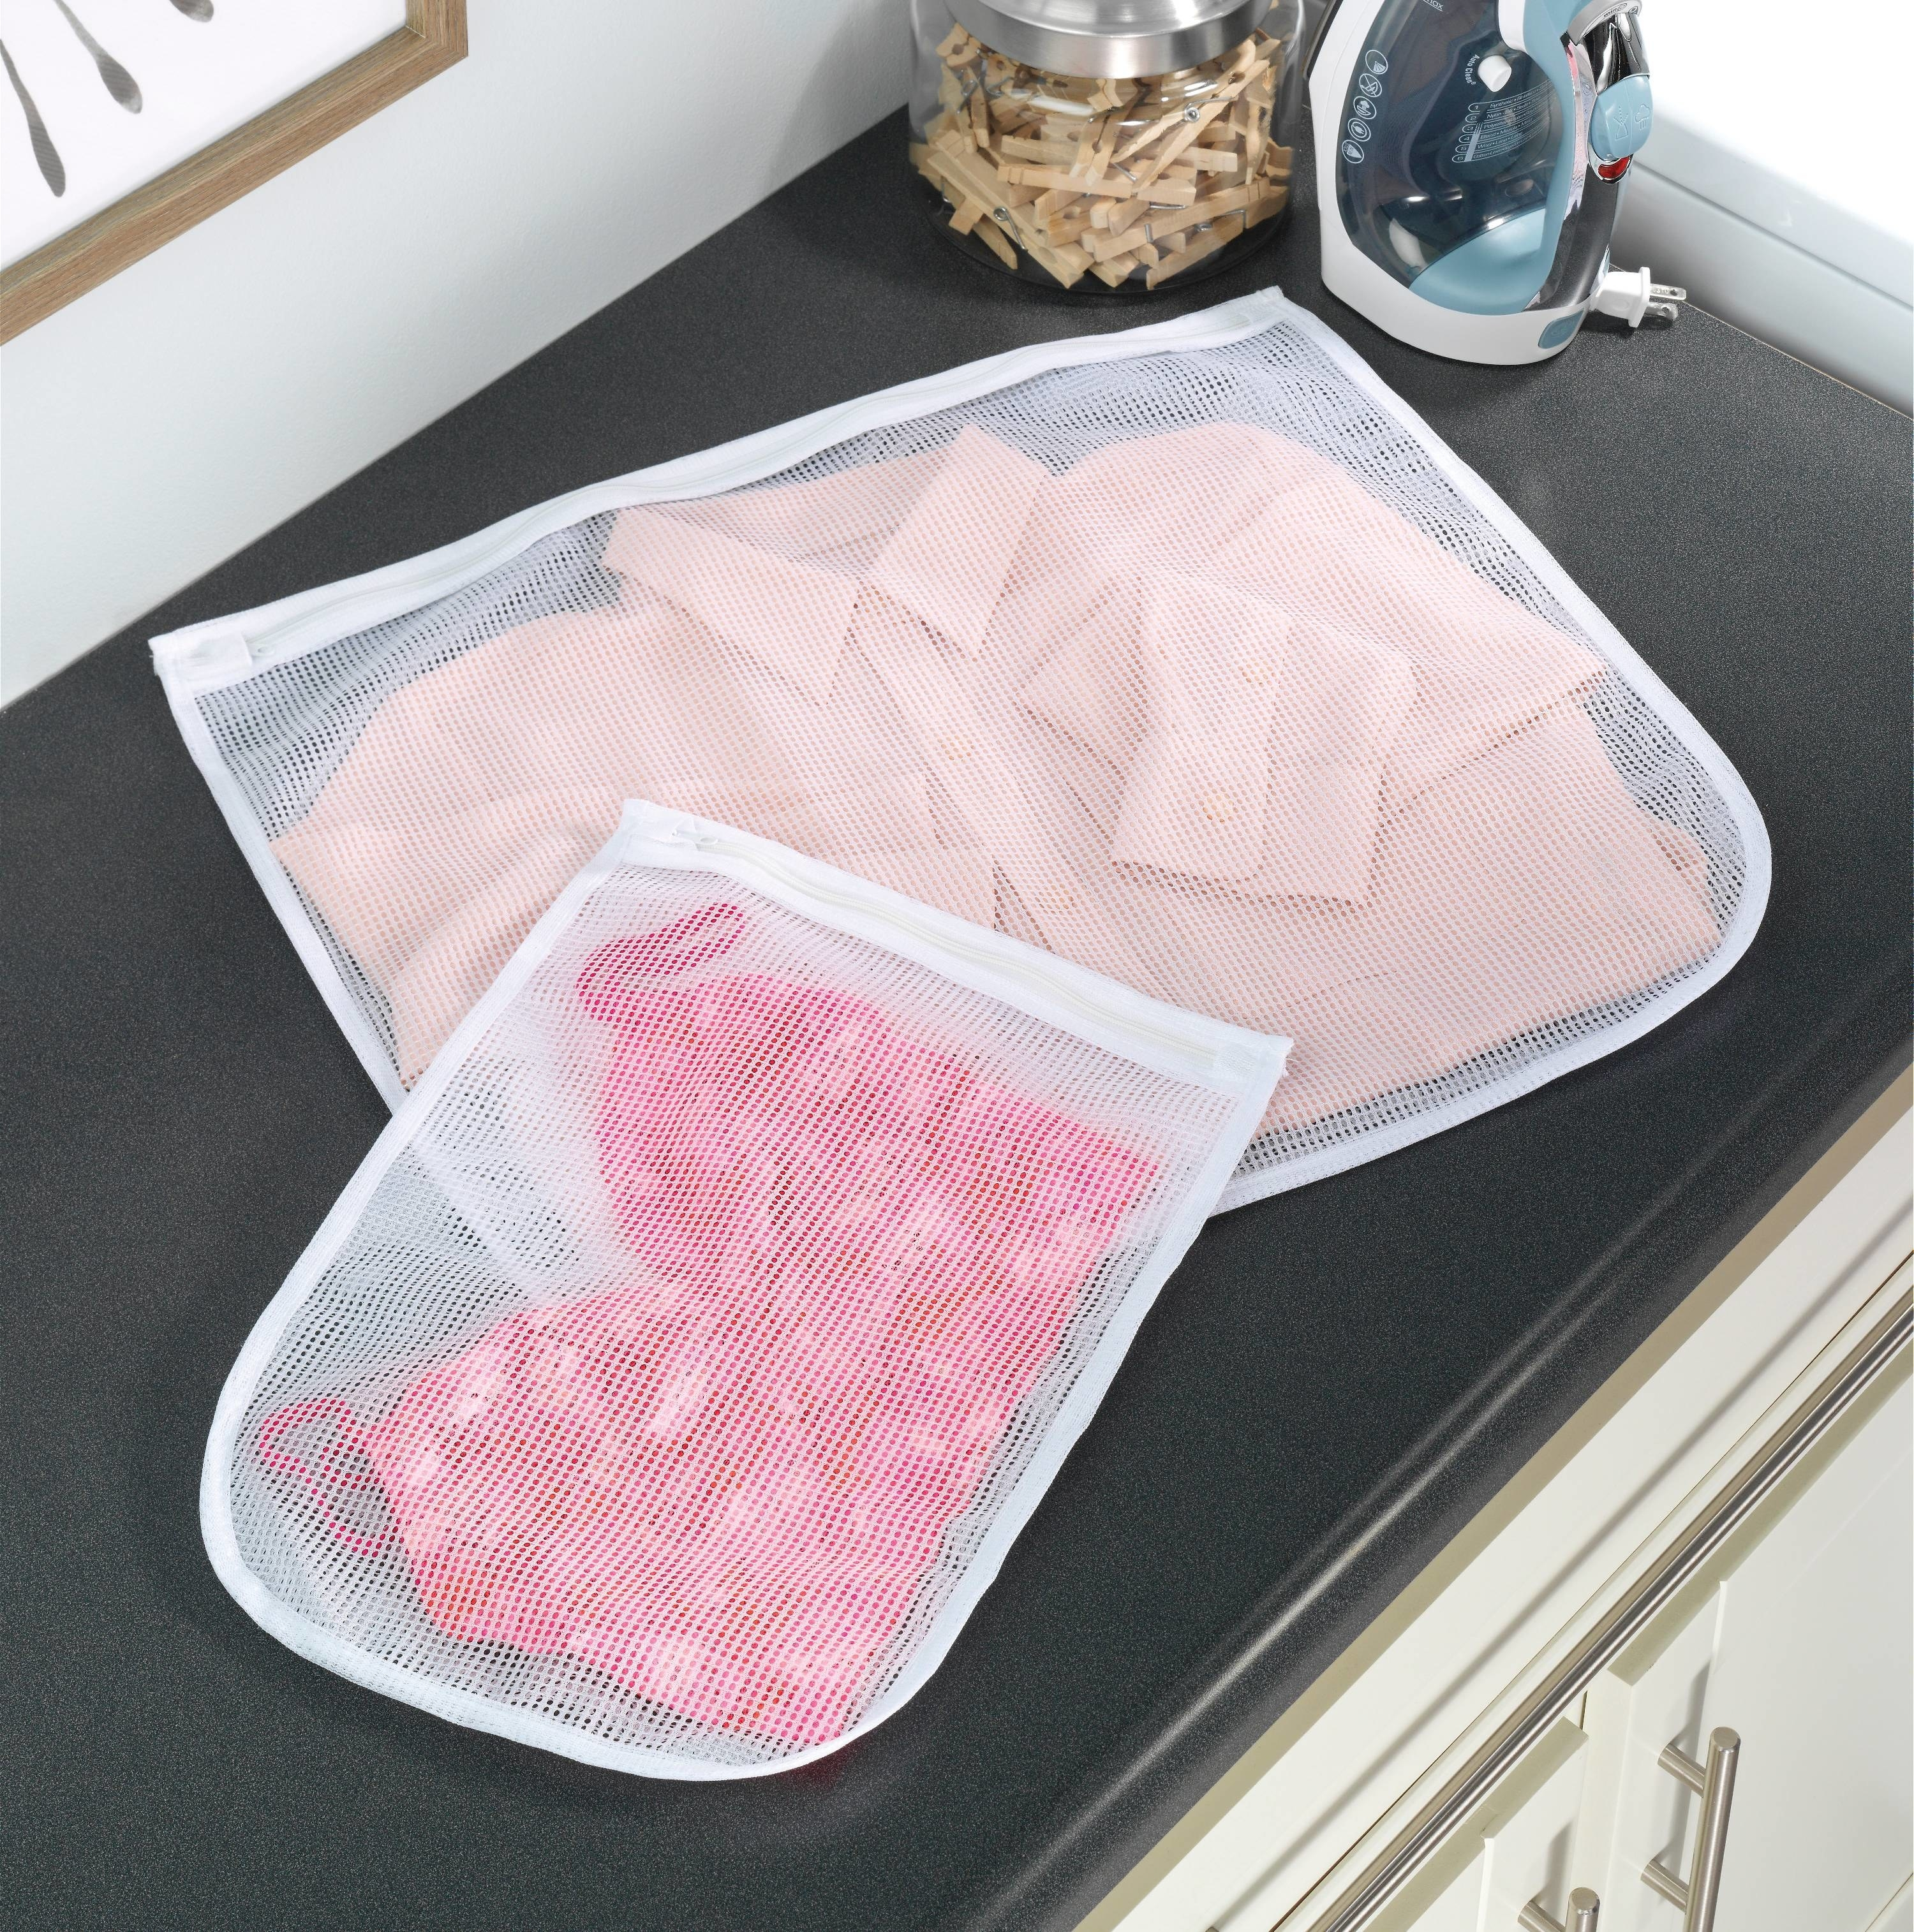 The zippered mesh bags used to wash laundry